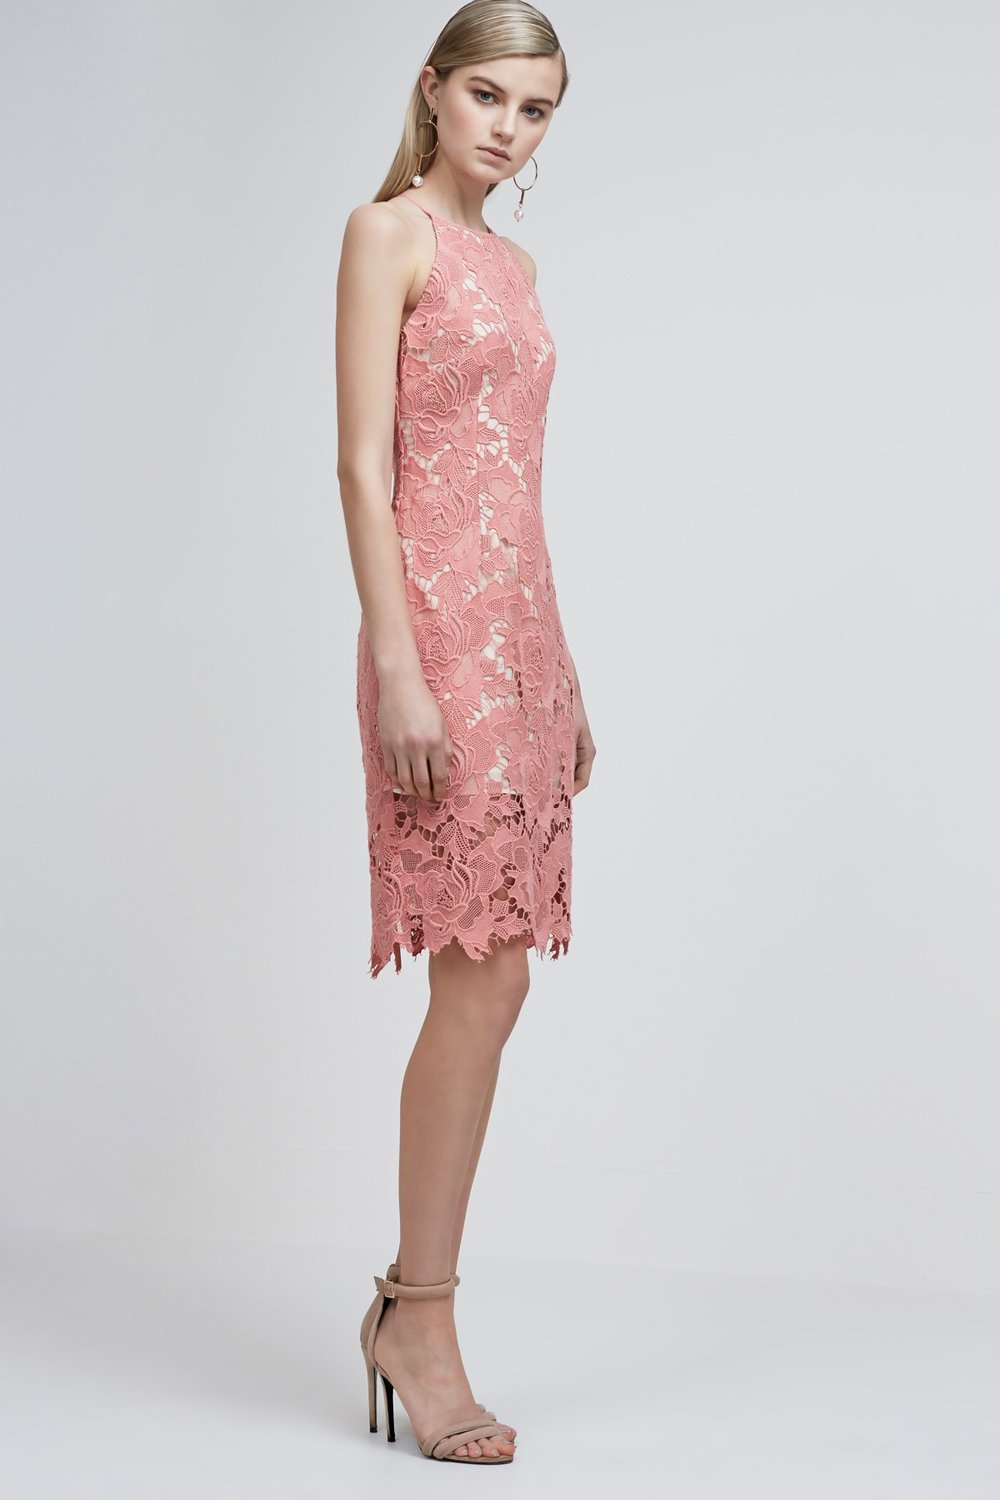 Keepsake The Label Lonely Lover Lace Dress.